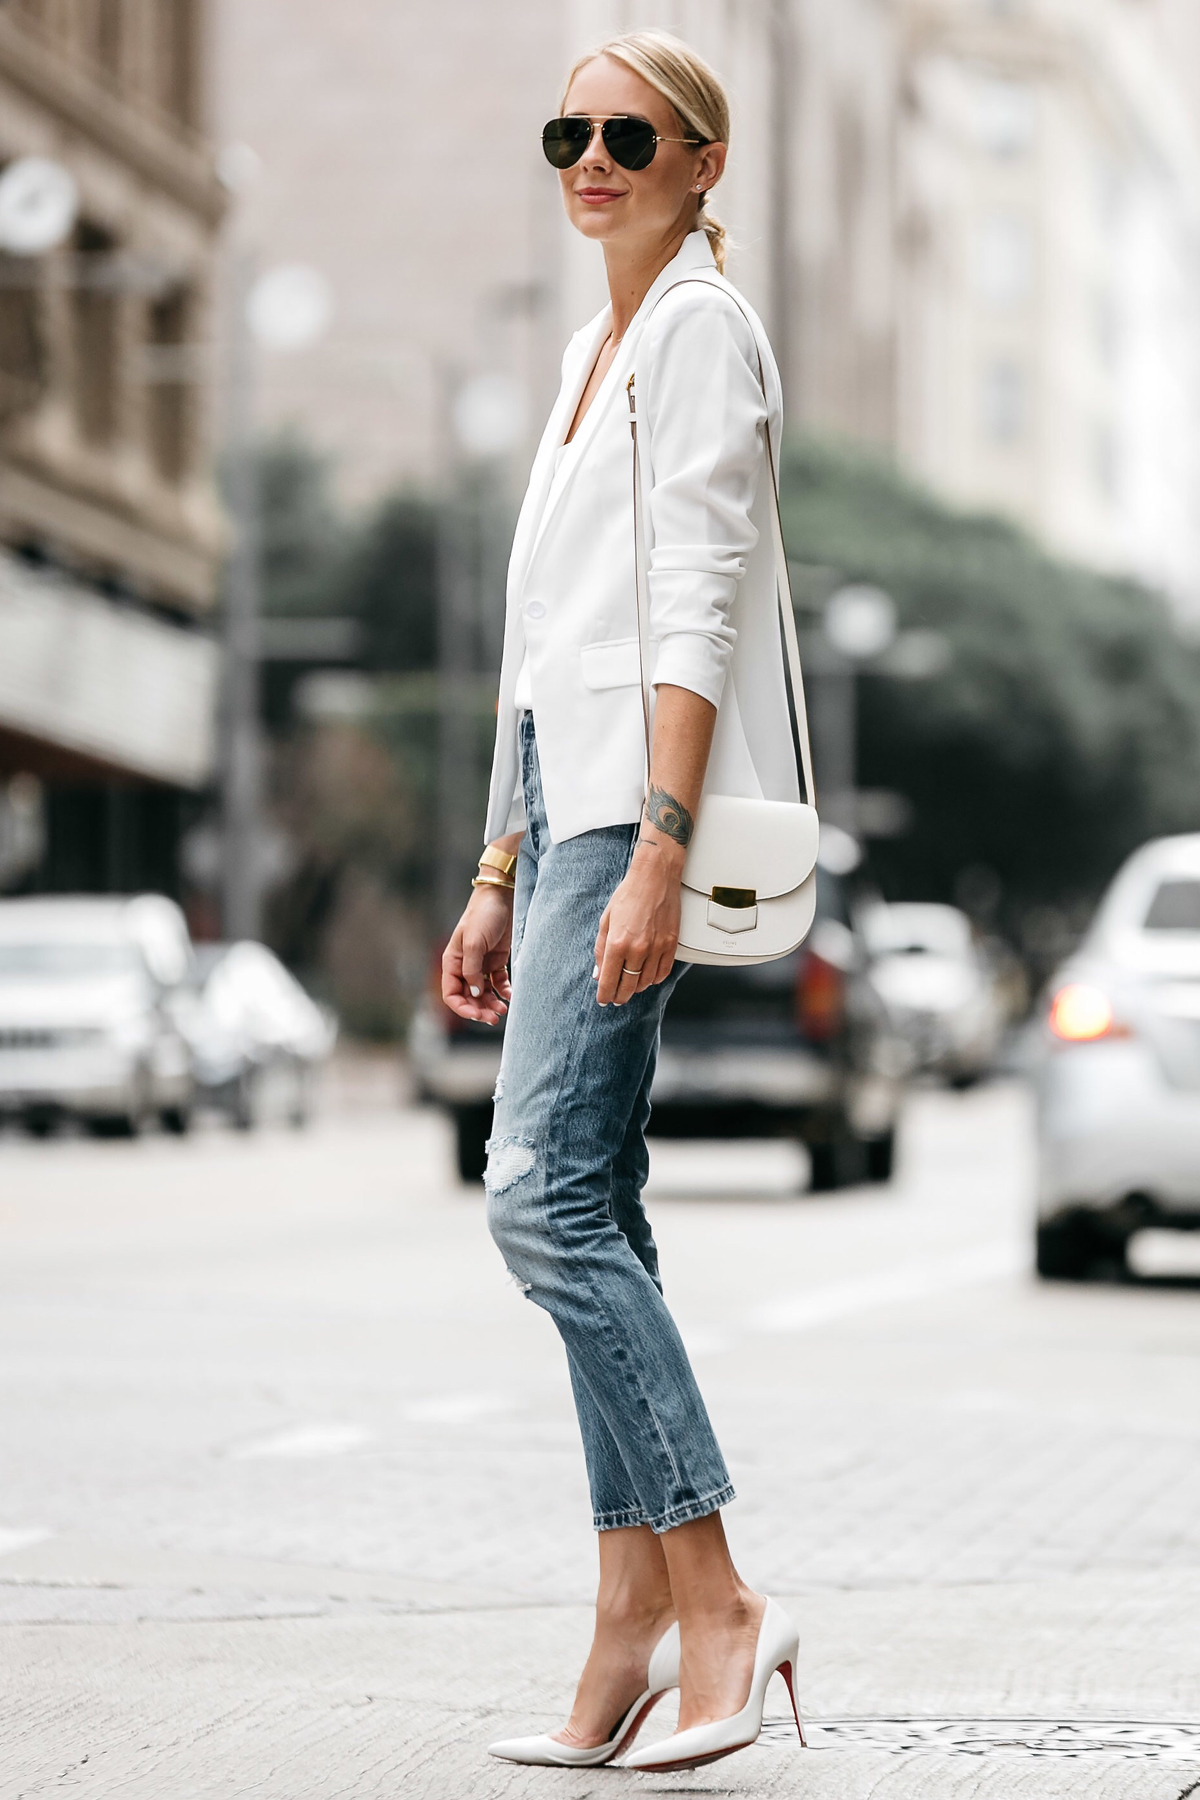 Fashion Jackson Blonde Woman Wearing White Blazer Distressed Jeans Outfit